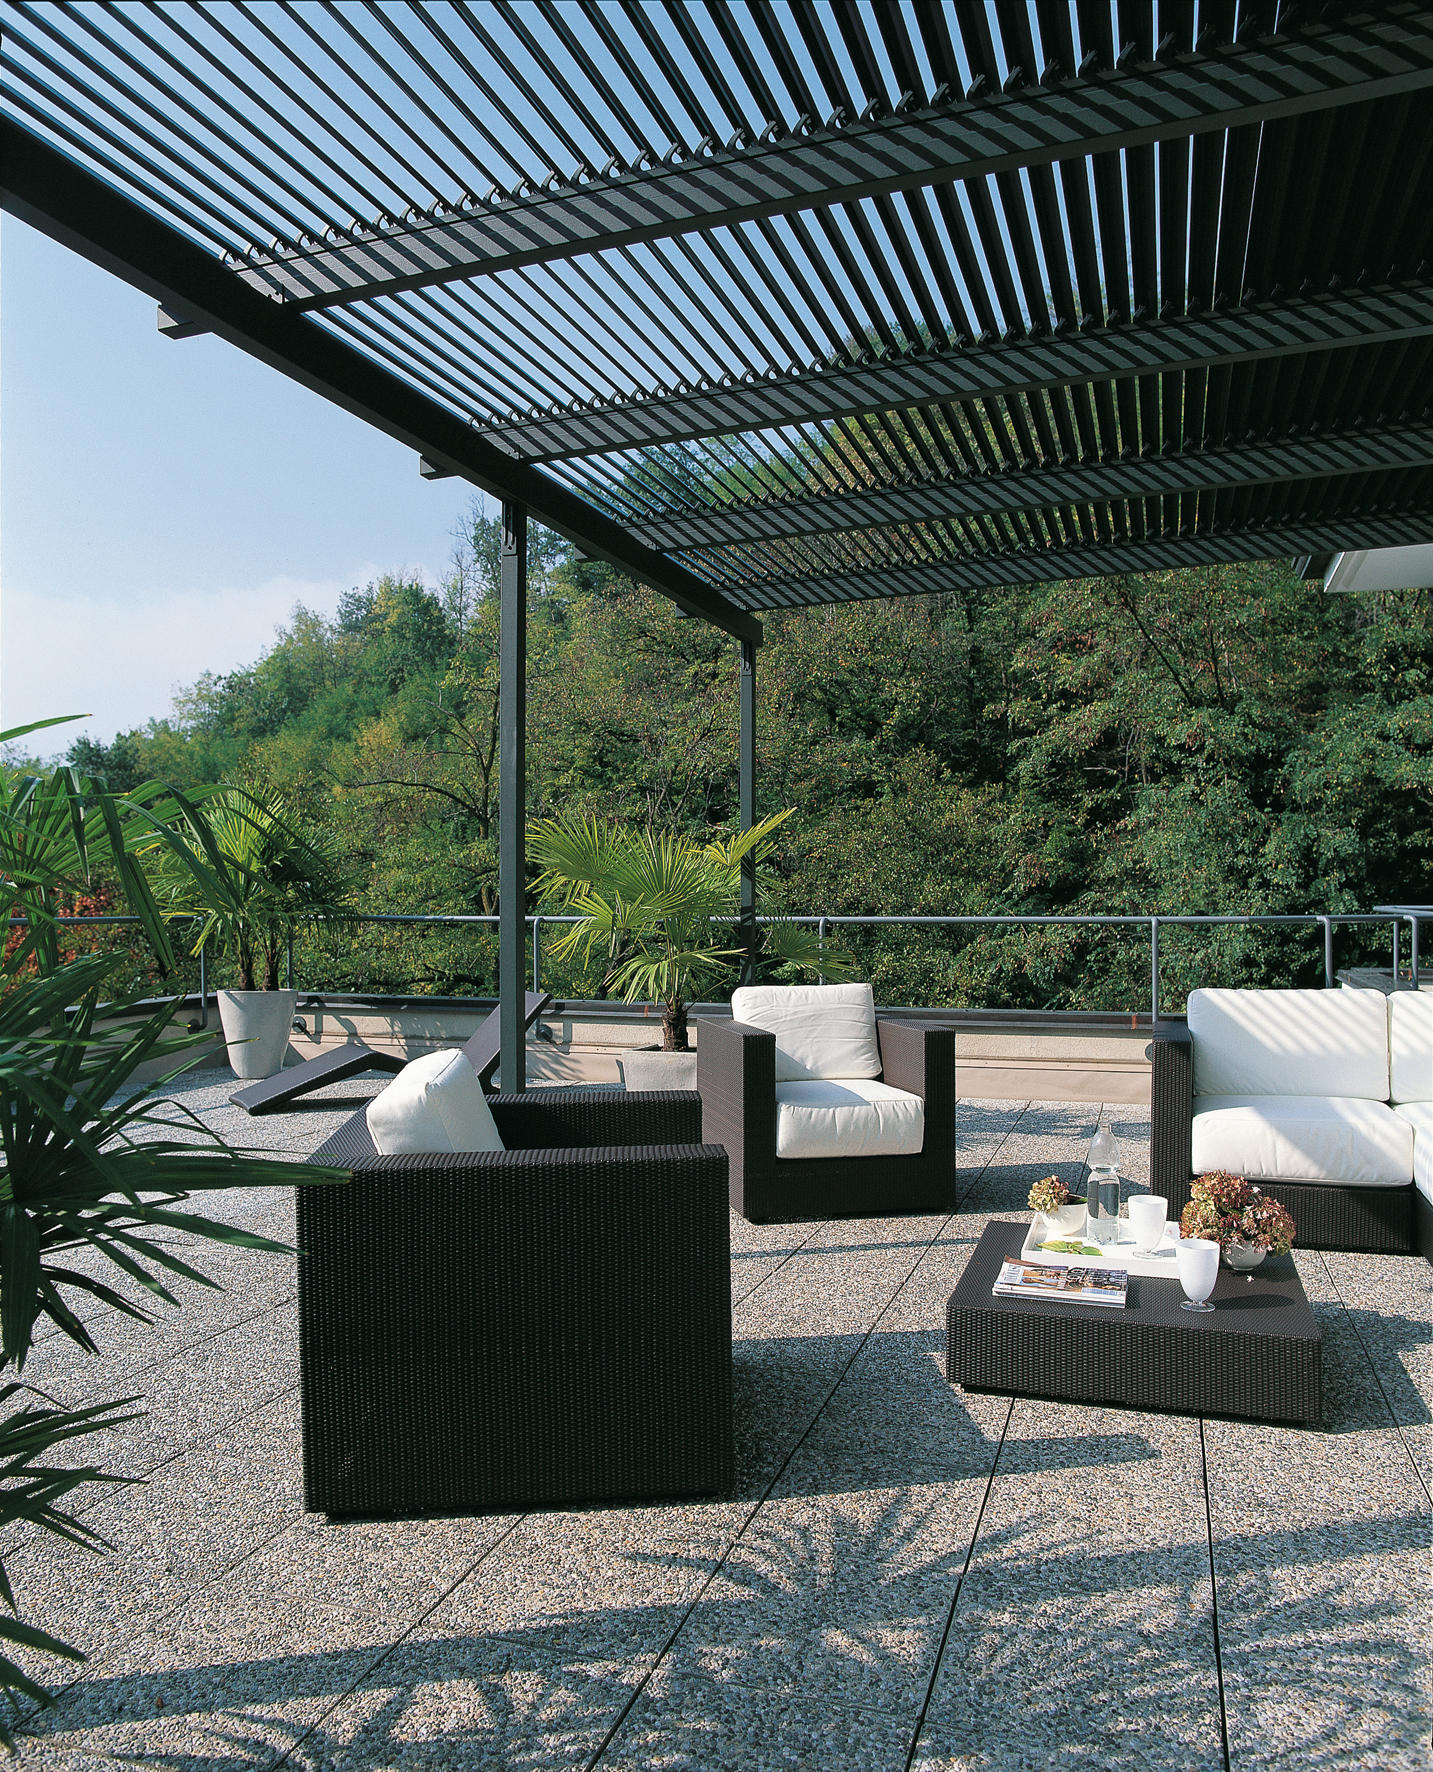 meridienne pergola pergolas from unopi architonic. Black Bedroom Furniture Sets. Home Design Ideas